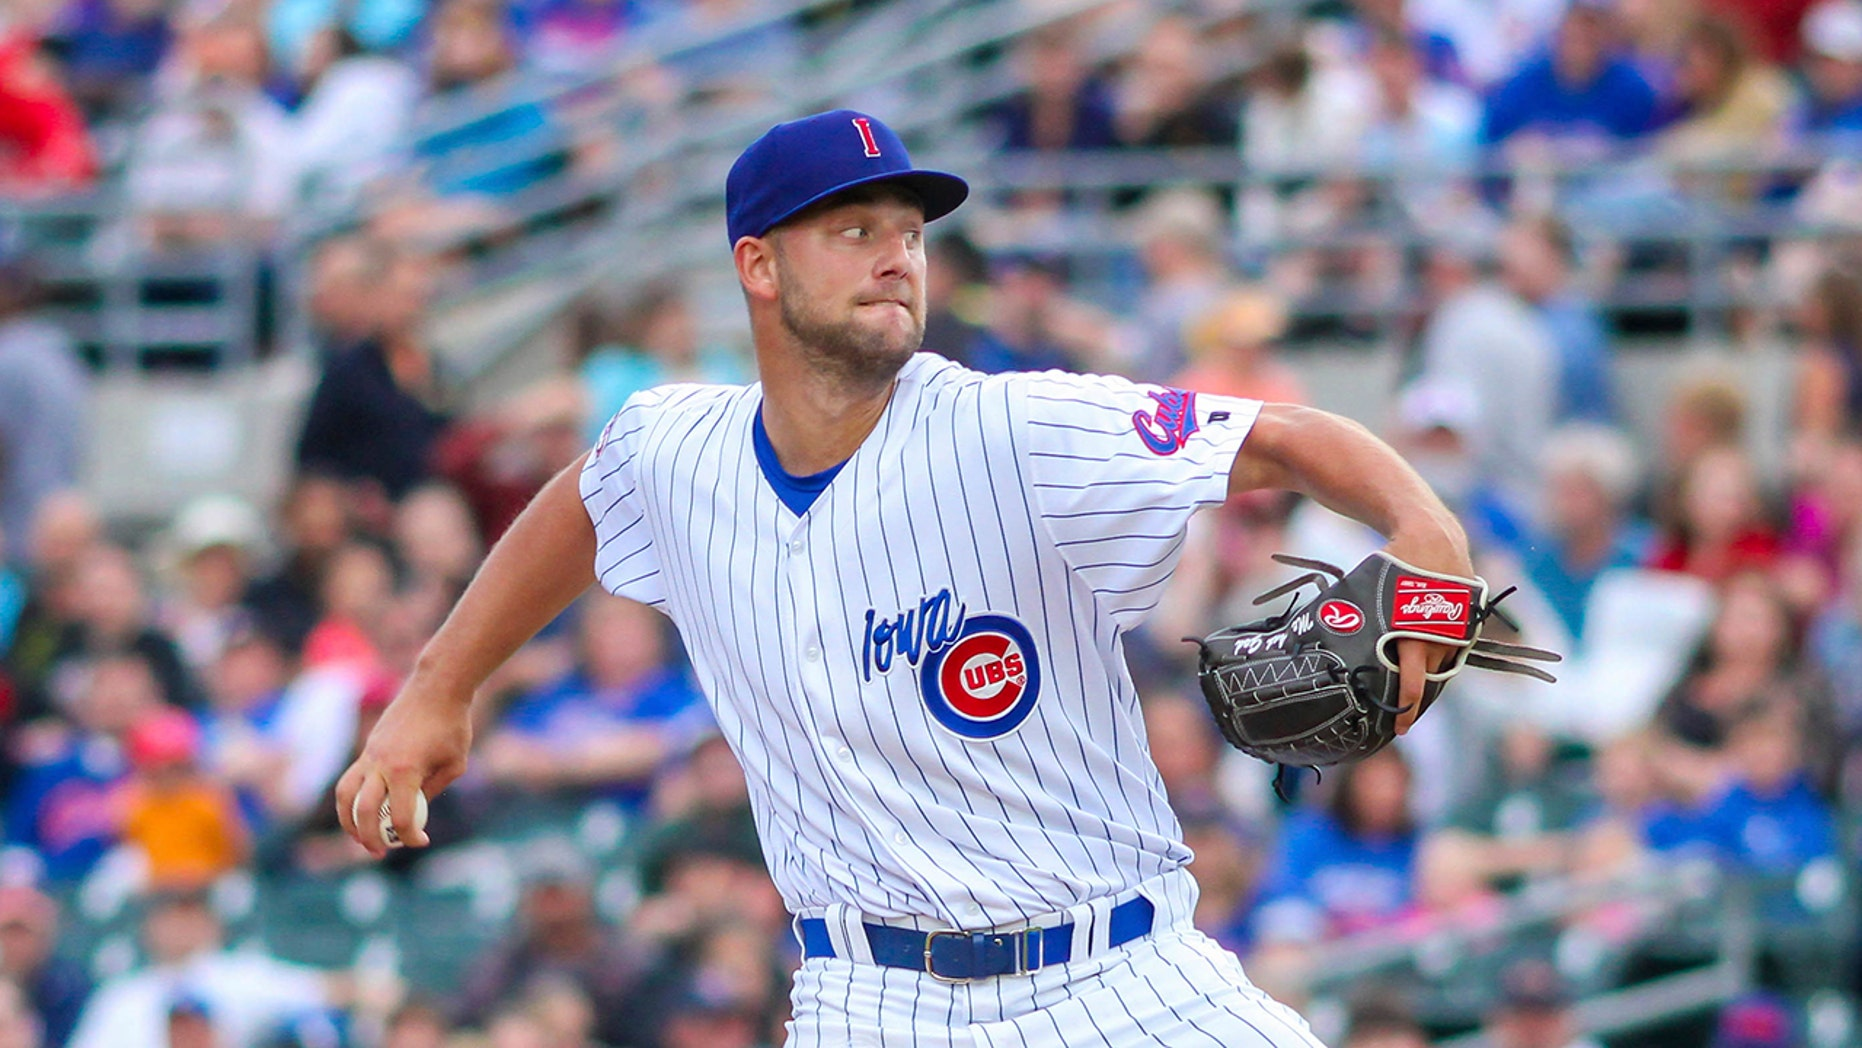 "Iowa Cubs launcher Trevor Clifton, 35, will ride for a Pacific Coast League game against the Colorado Springs Sky Sox on June 22, 201<div class=""e3lan e3lan-in-post1""><script async src=""//pagead2.googlesyndication.com/pagead/js/adsbygoogle.js""></script>